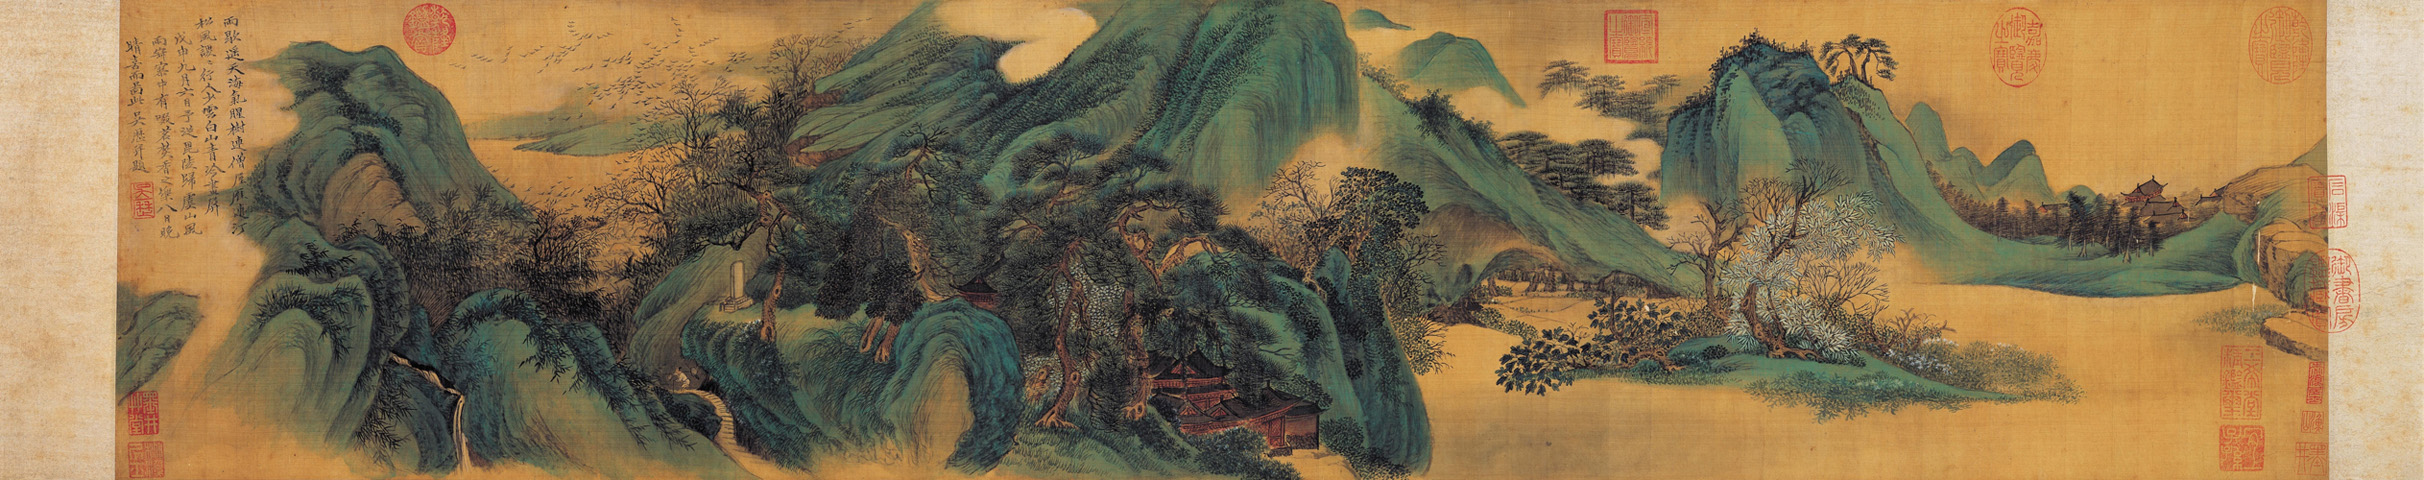 Wu Li: Green Mountains and White Clouds